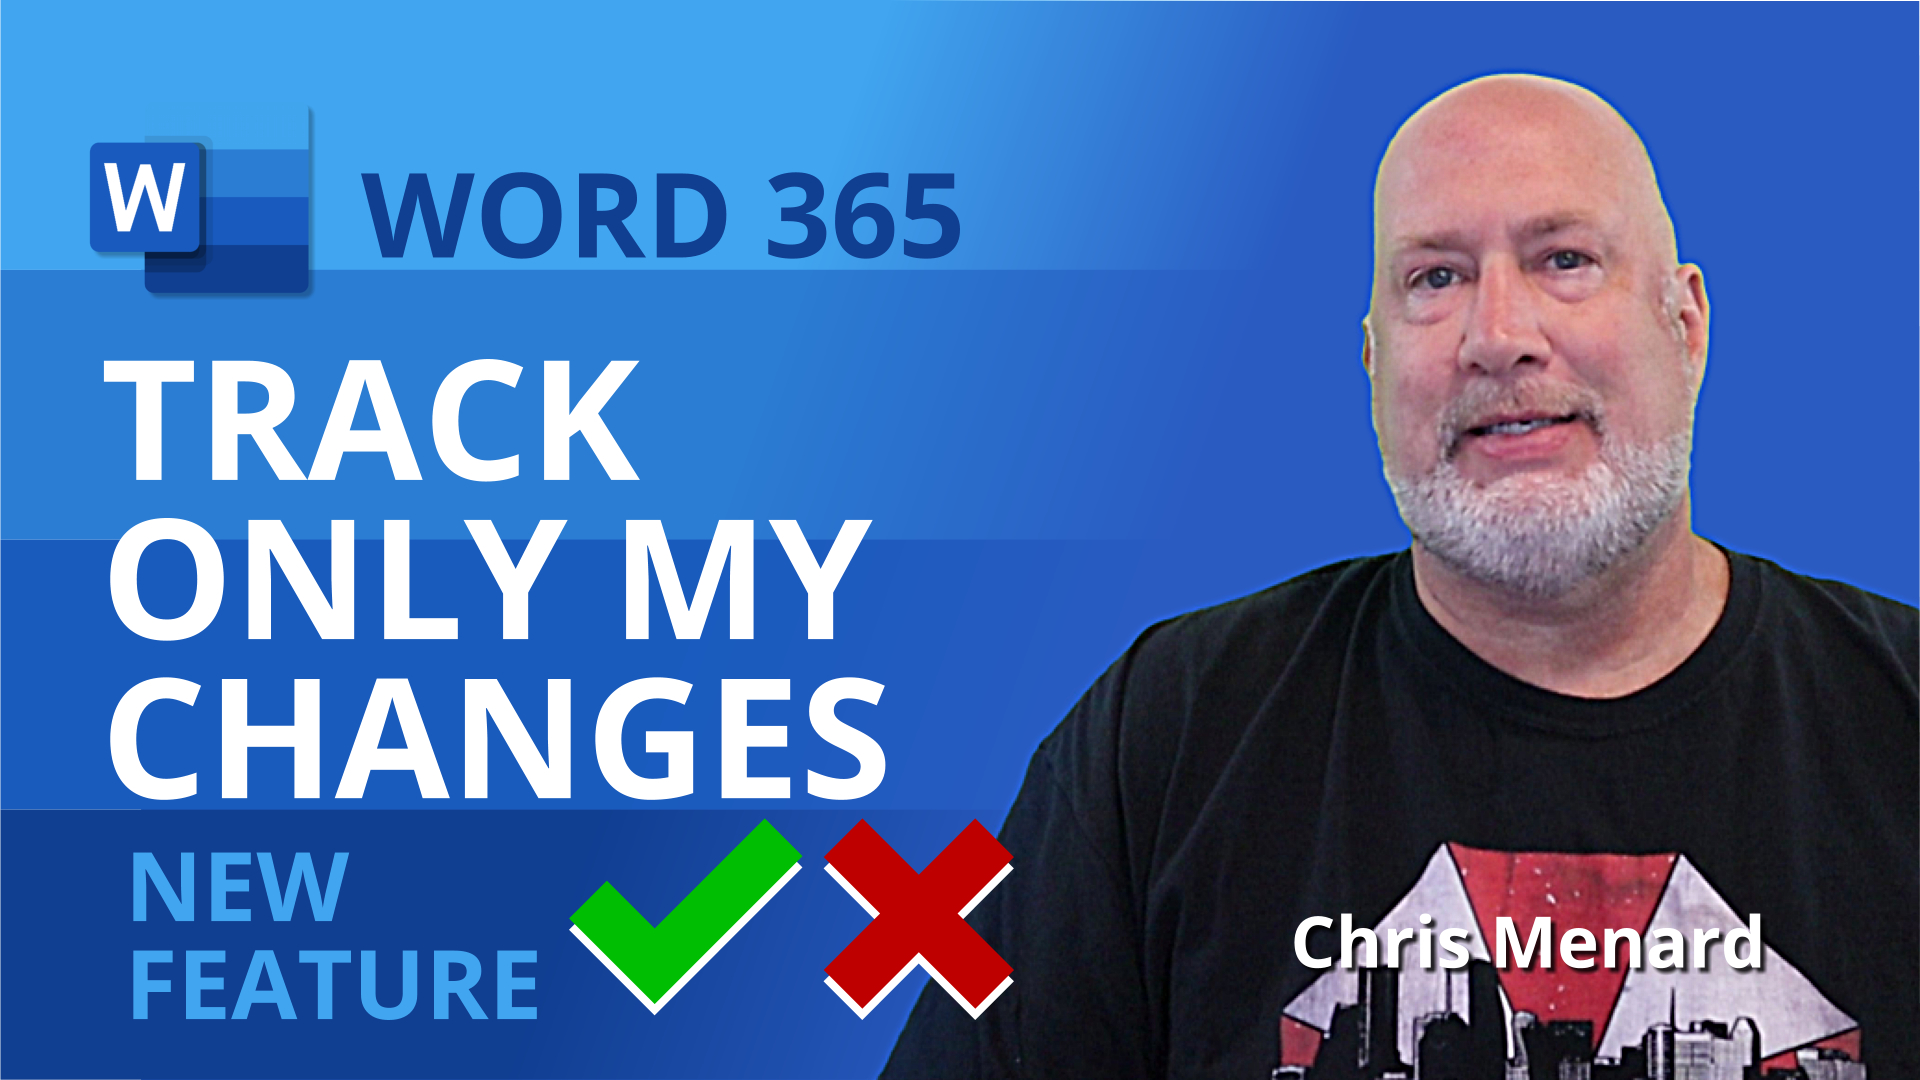 Word track changes - Just Mine - Track only your changes - New feature - August 2021